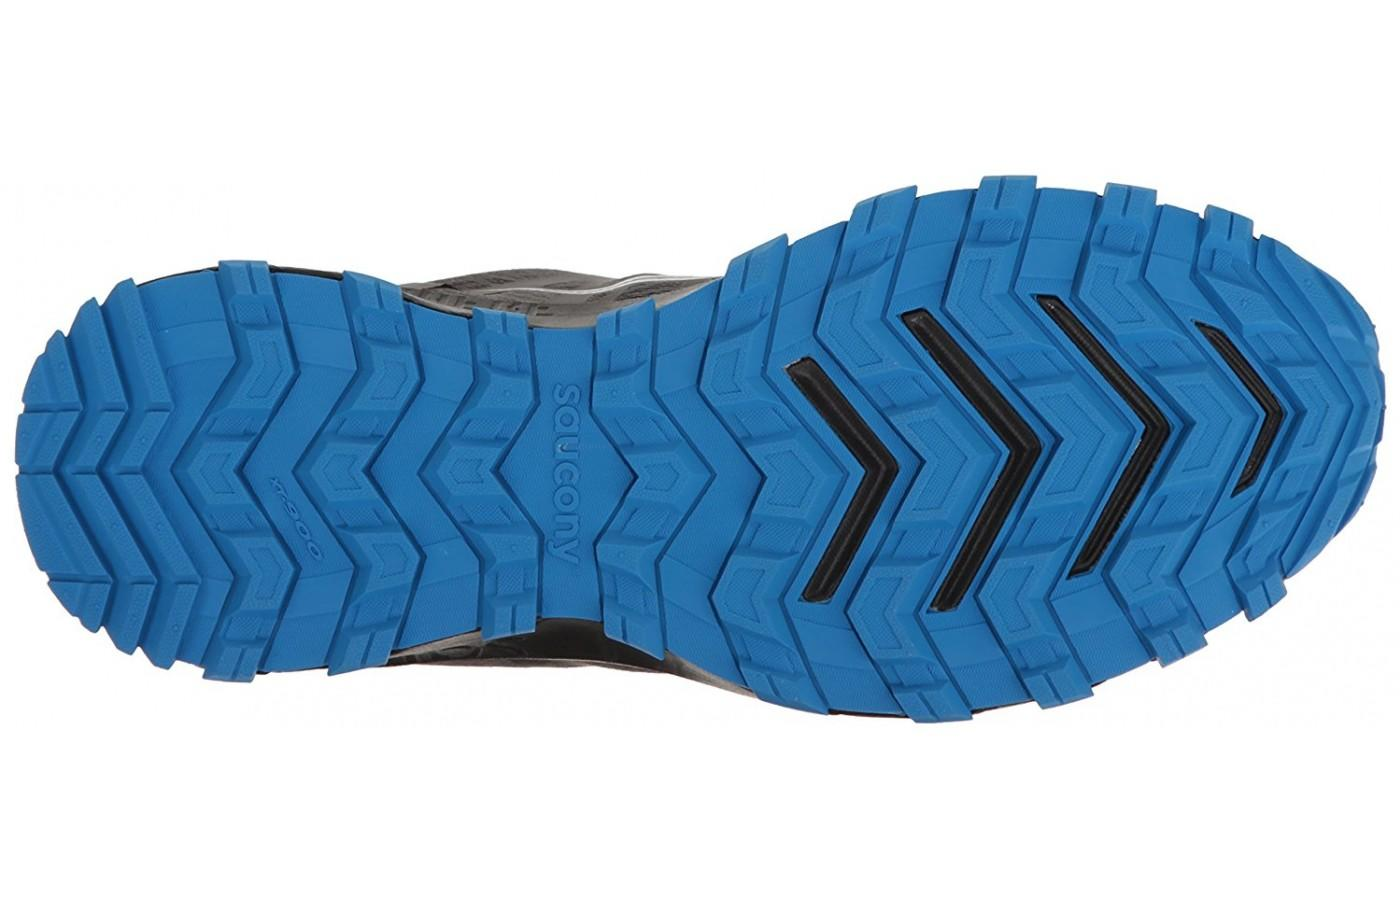 The outsole is aggressive and designed for the toughest conditions